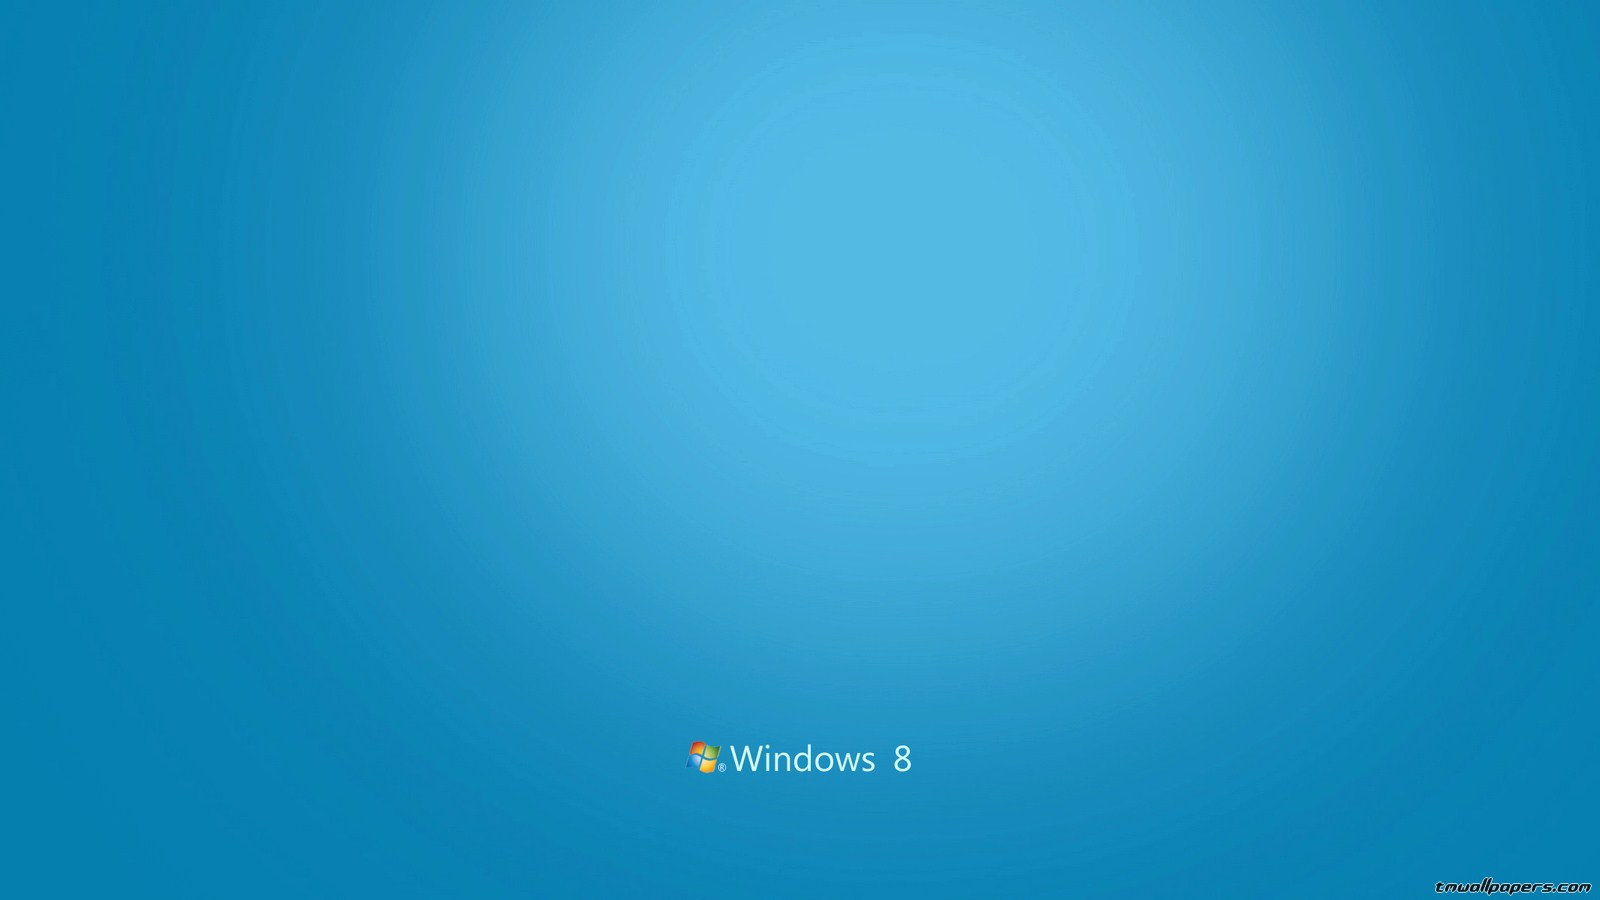 TMWallpapers Wide wallpapers e HD wallpapers   Windows 8 wallpapers 1600x900